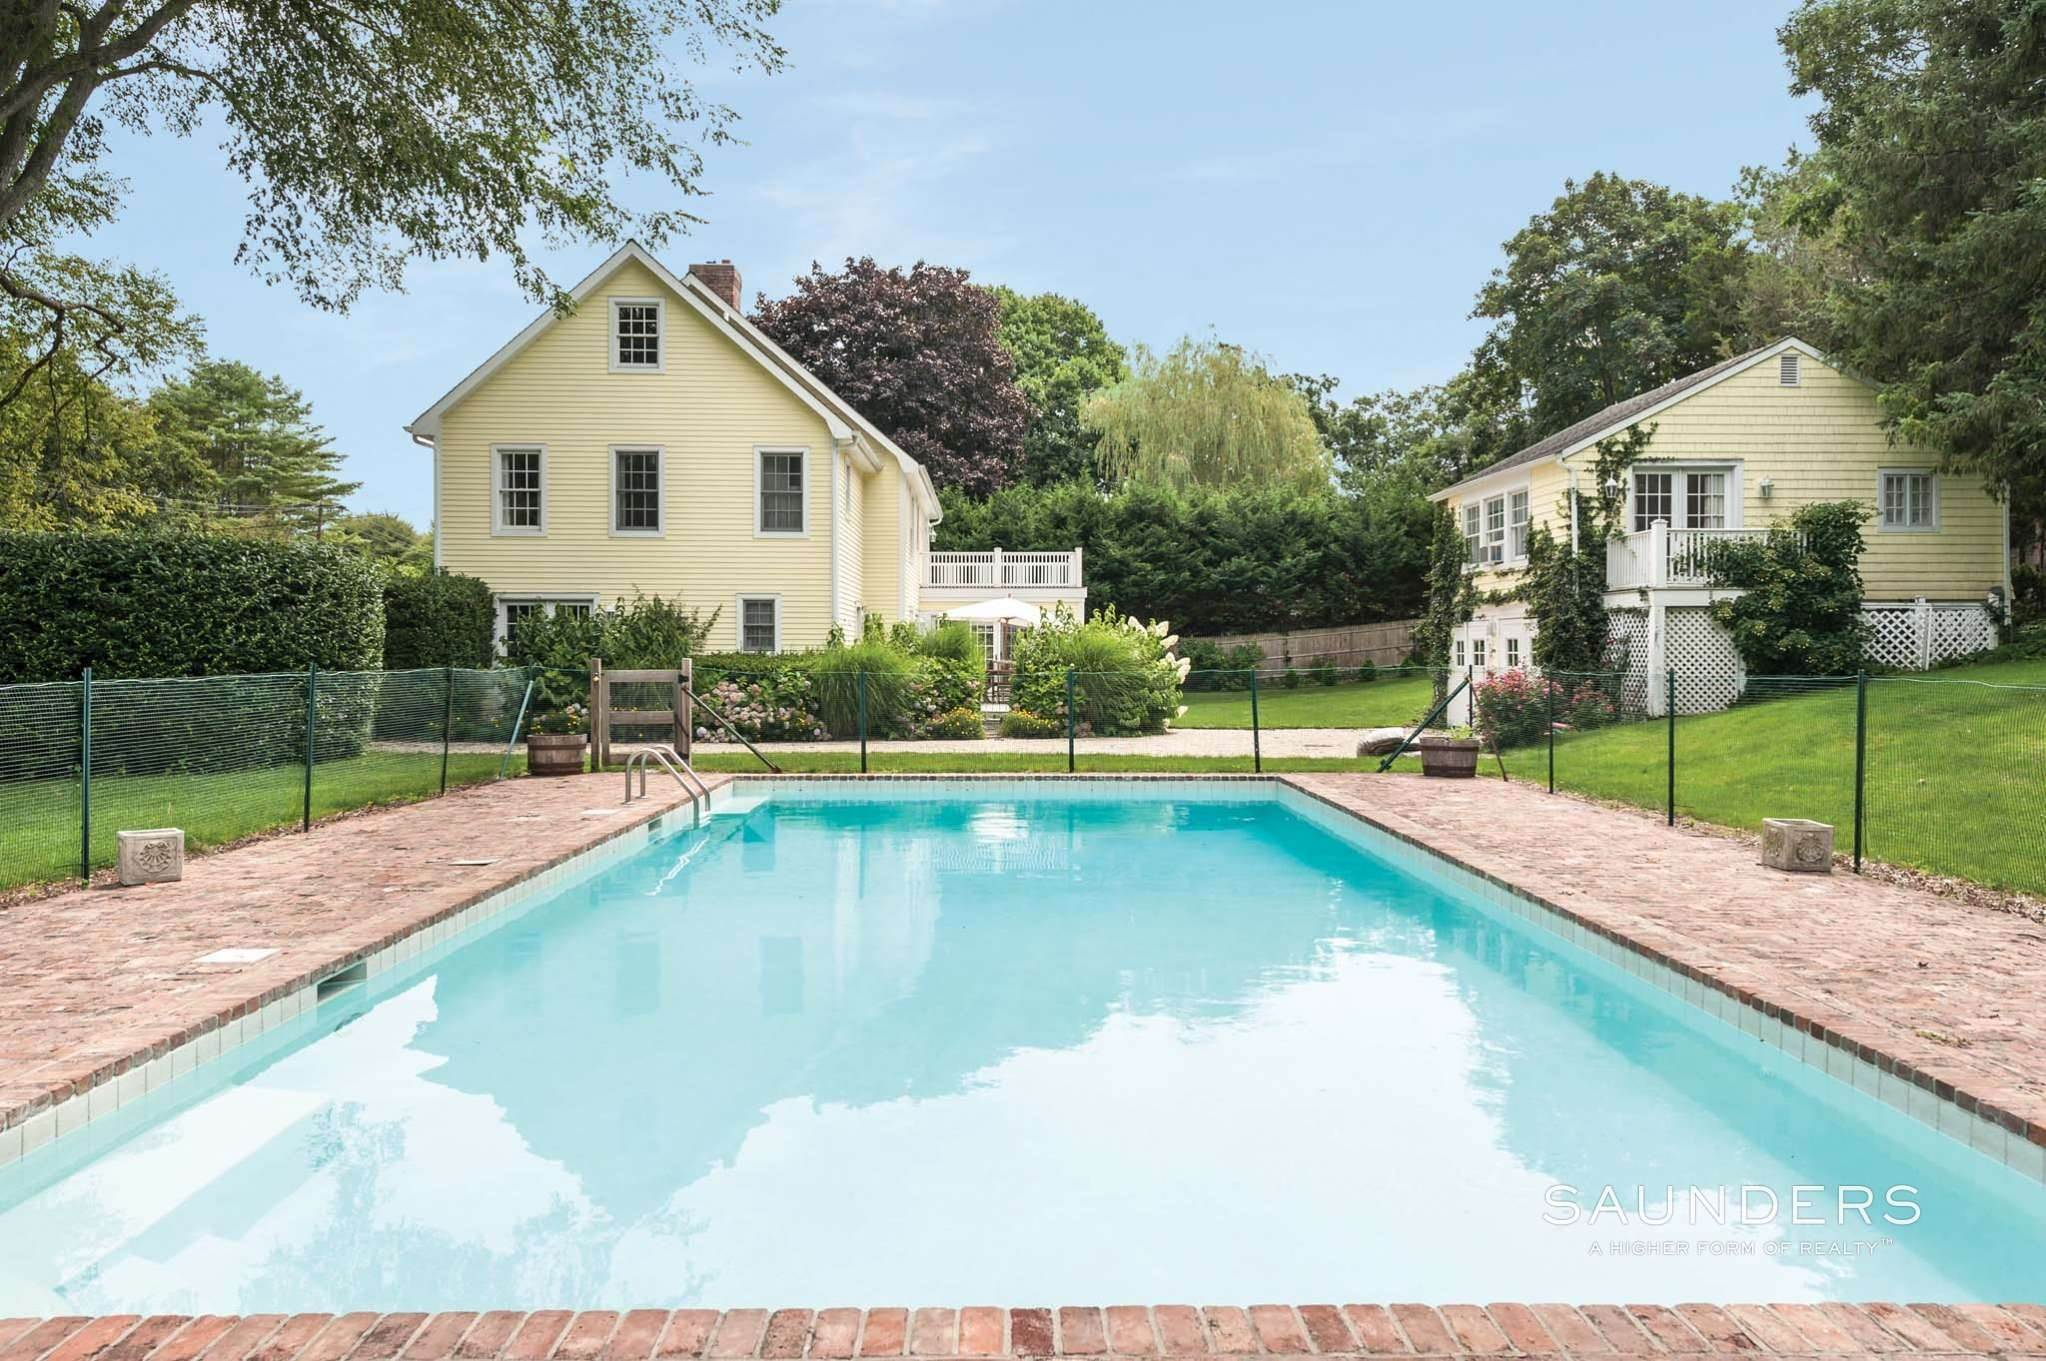 24. Single Family Homes for Sale at East Hampton Village Traditional South Of The Highway 21 Buckskill Road, East Hampton, East Hampton Town, NY 11937